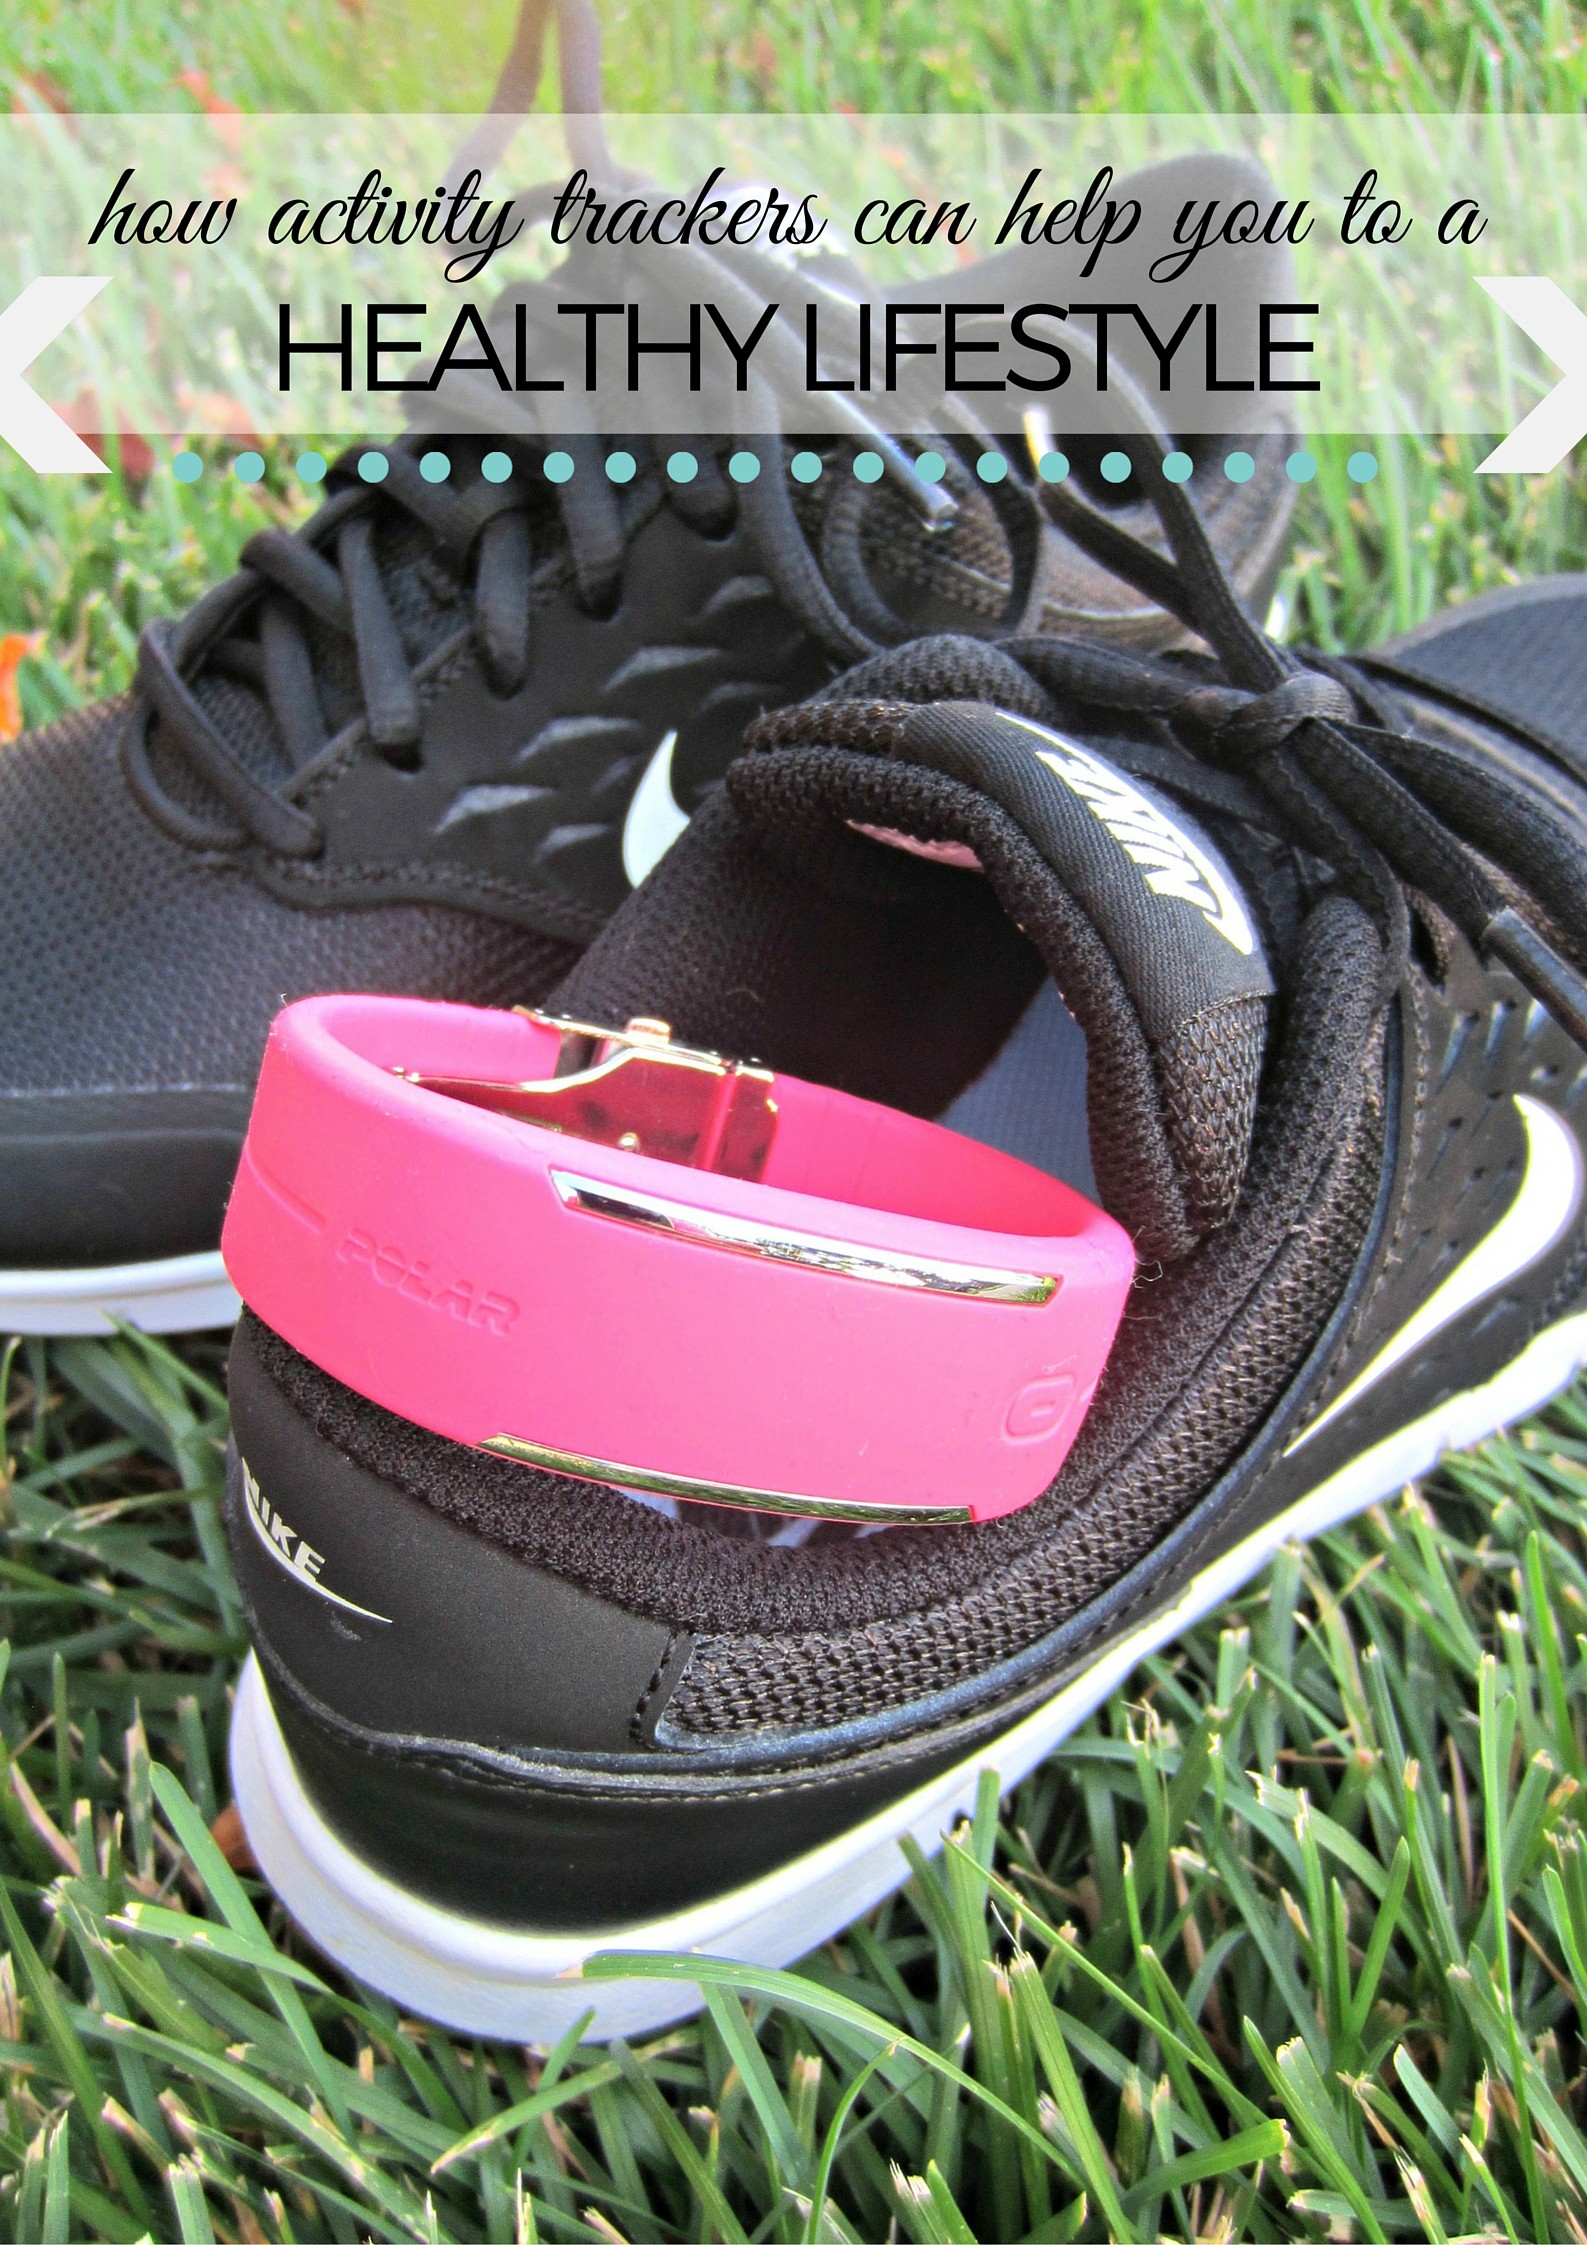 Polar Loop 2 Review - how activity trackers can help you achieve your goals